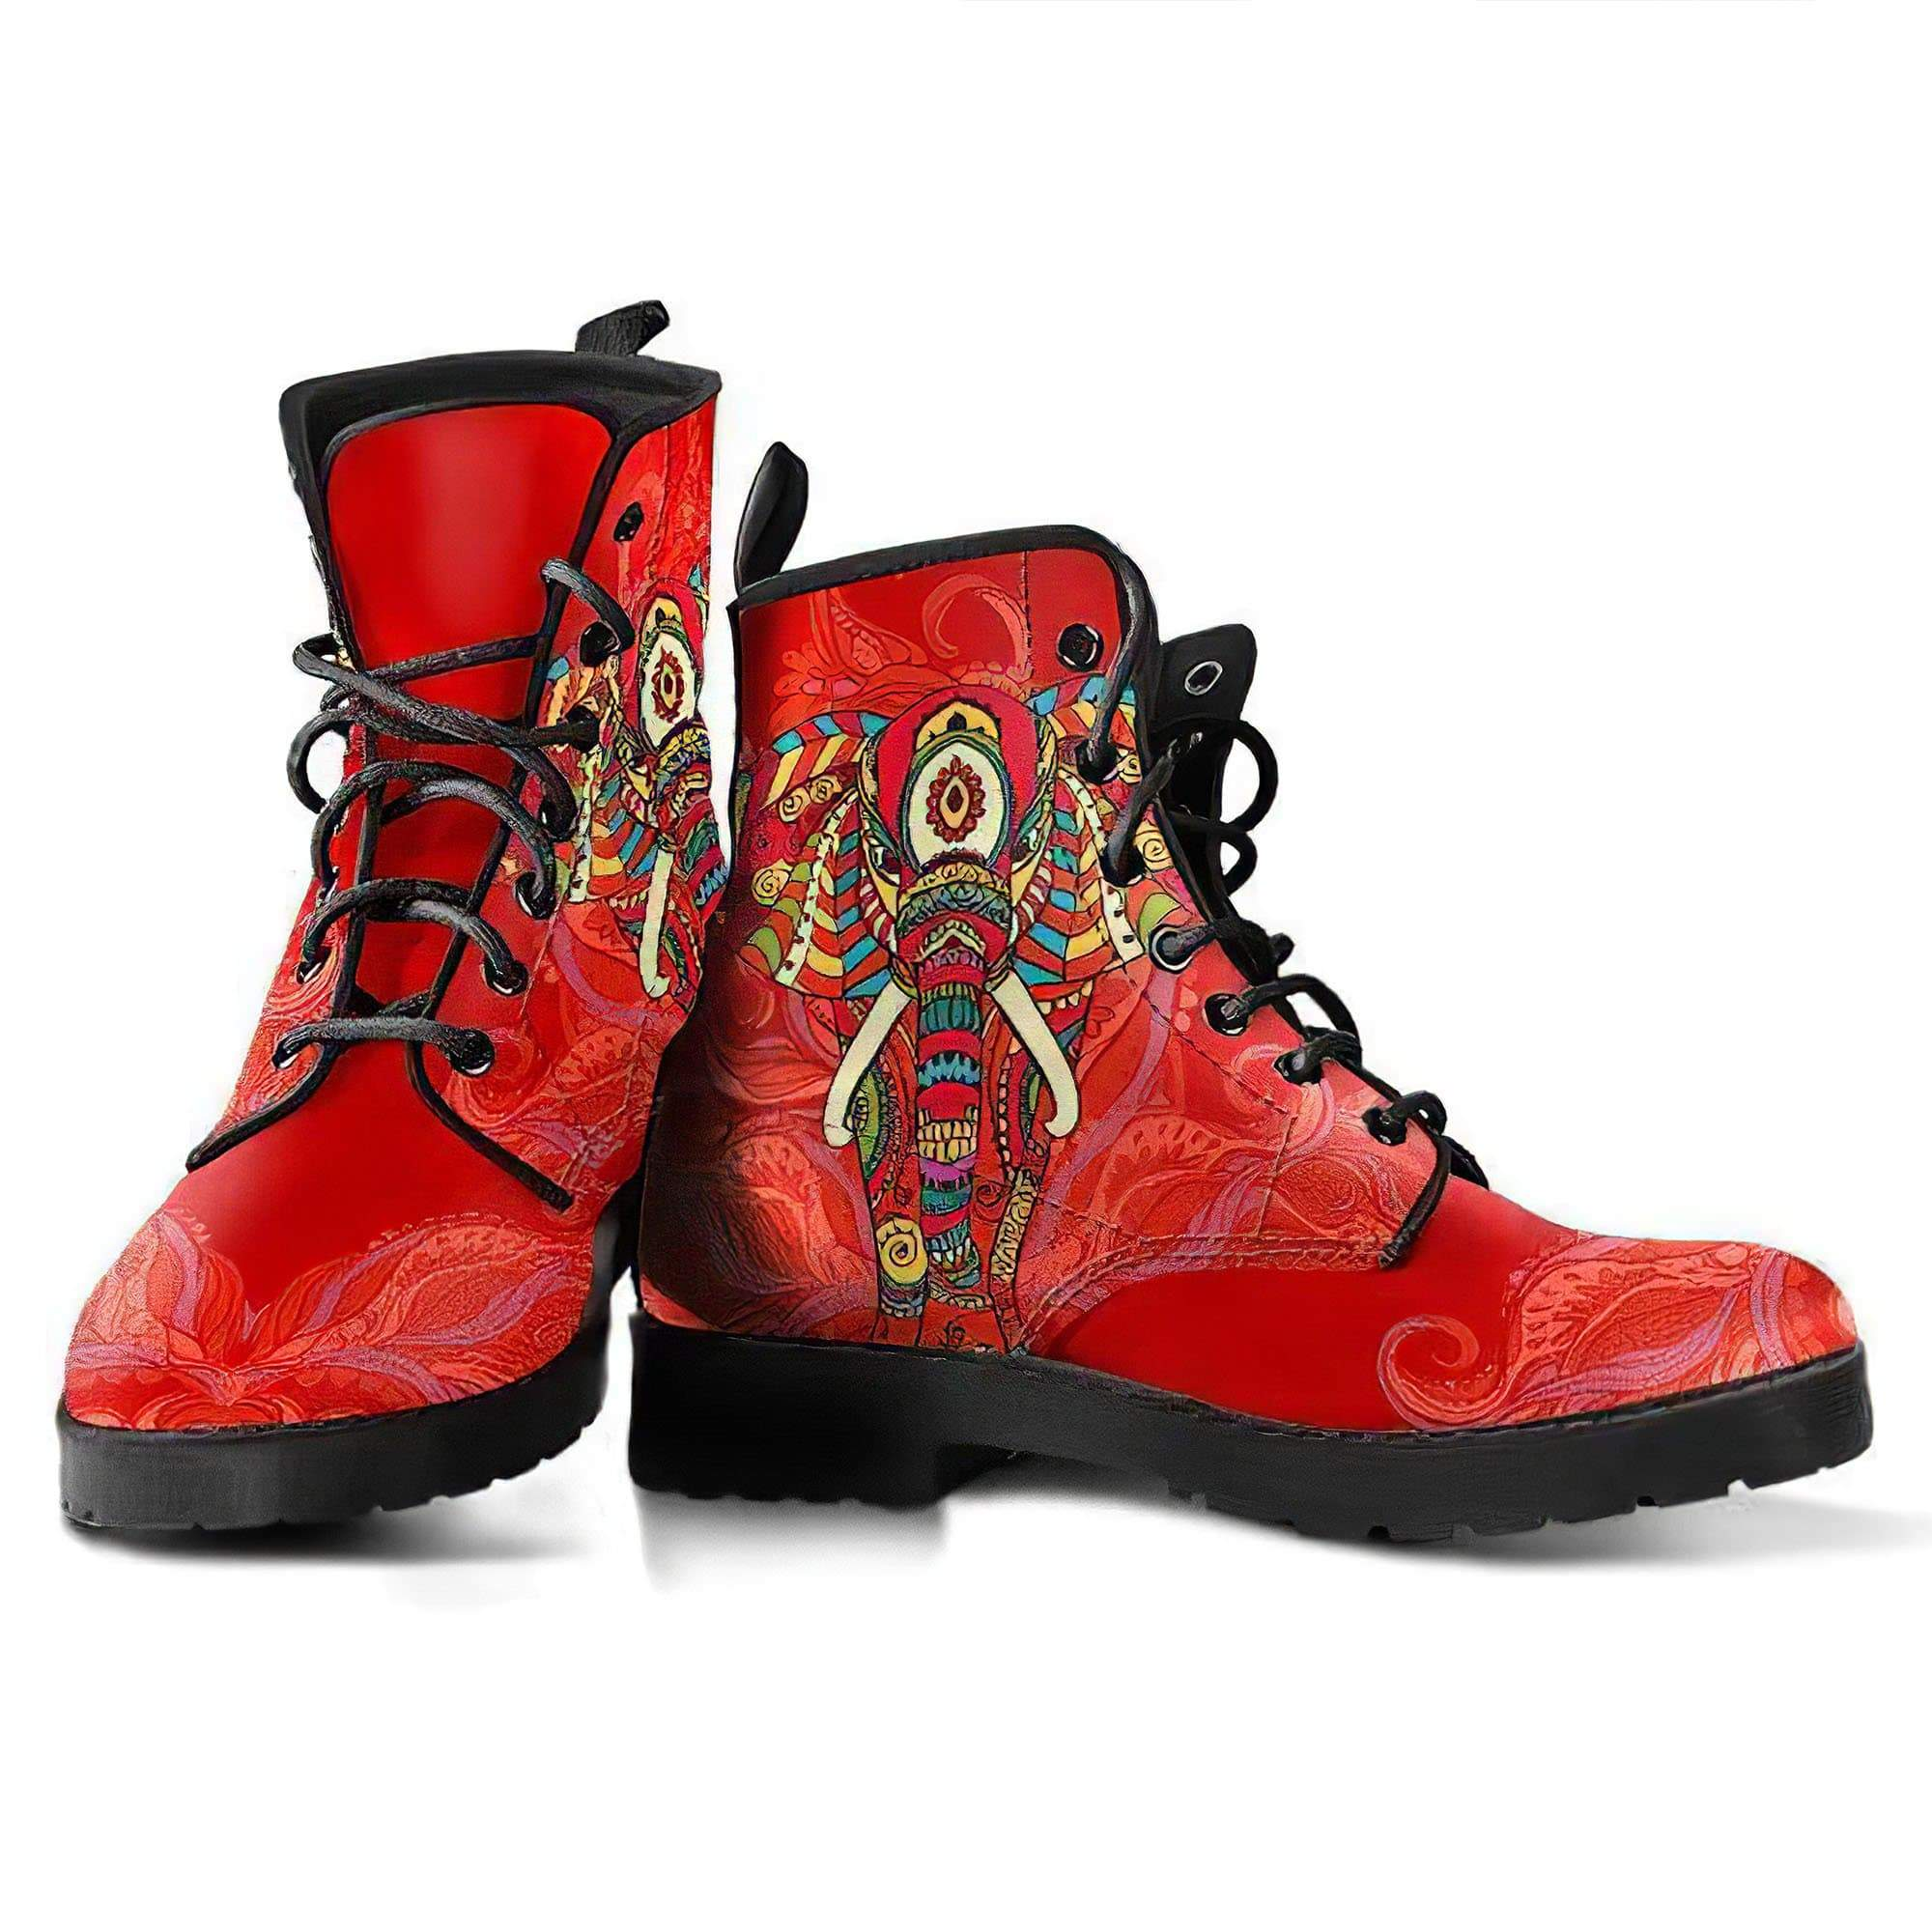 Red Elephant Handcrafted Boots Women's Leather Boots